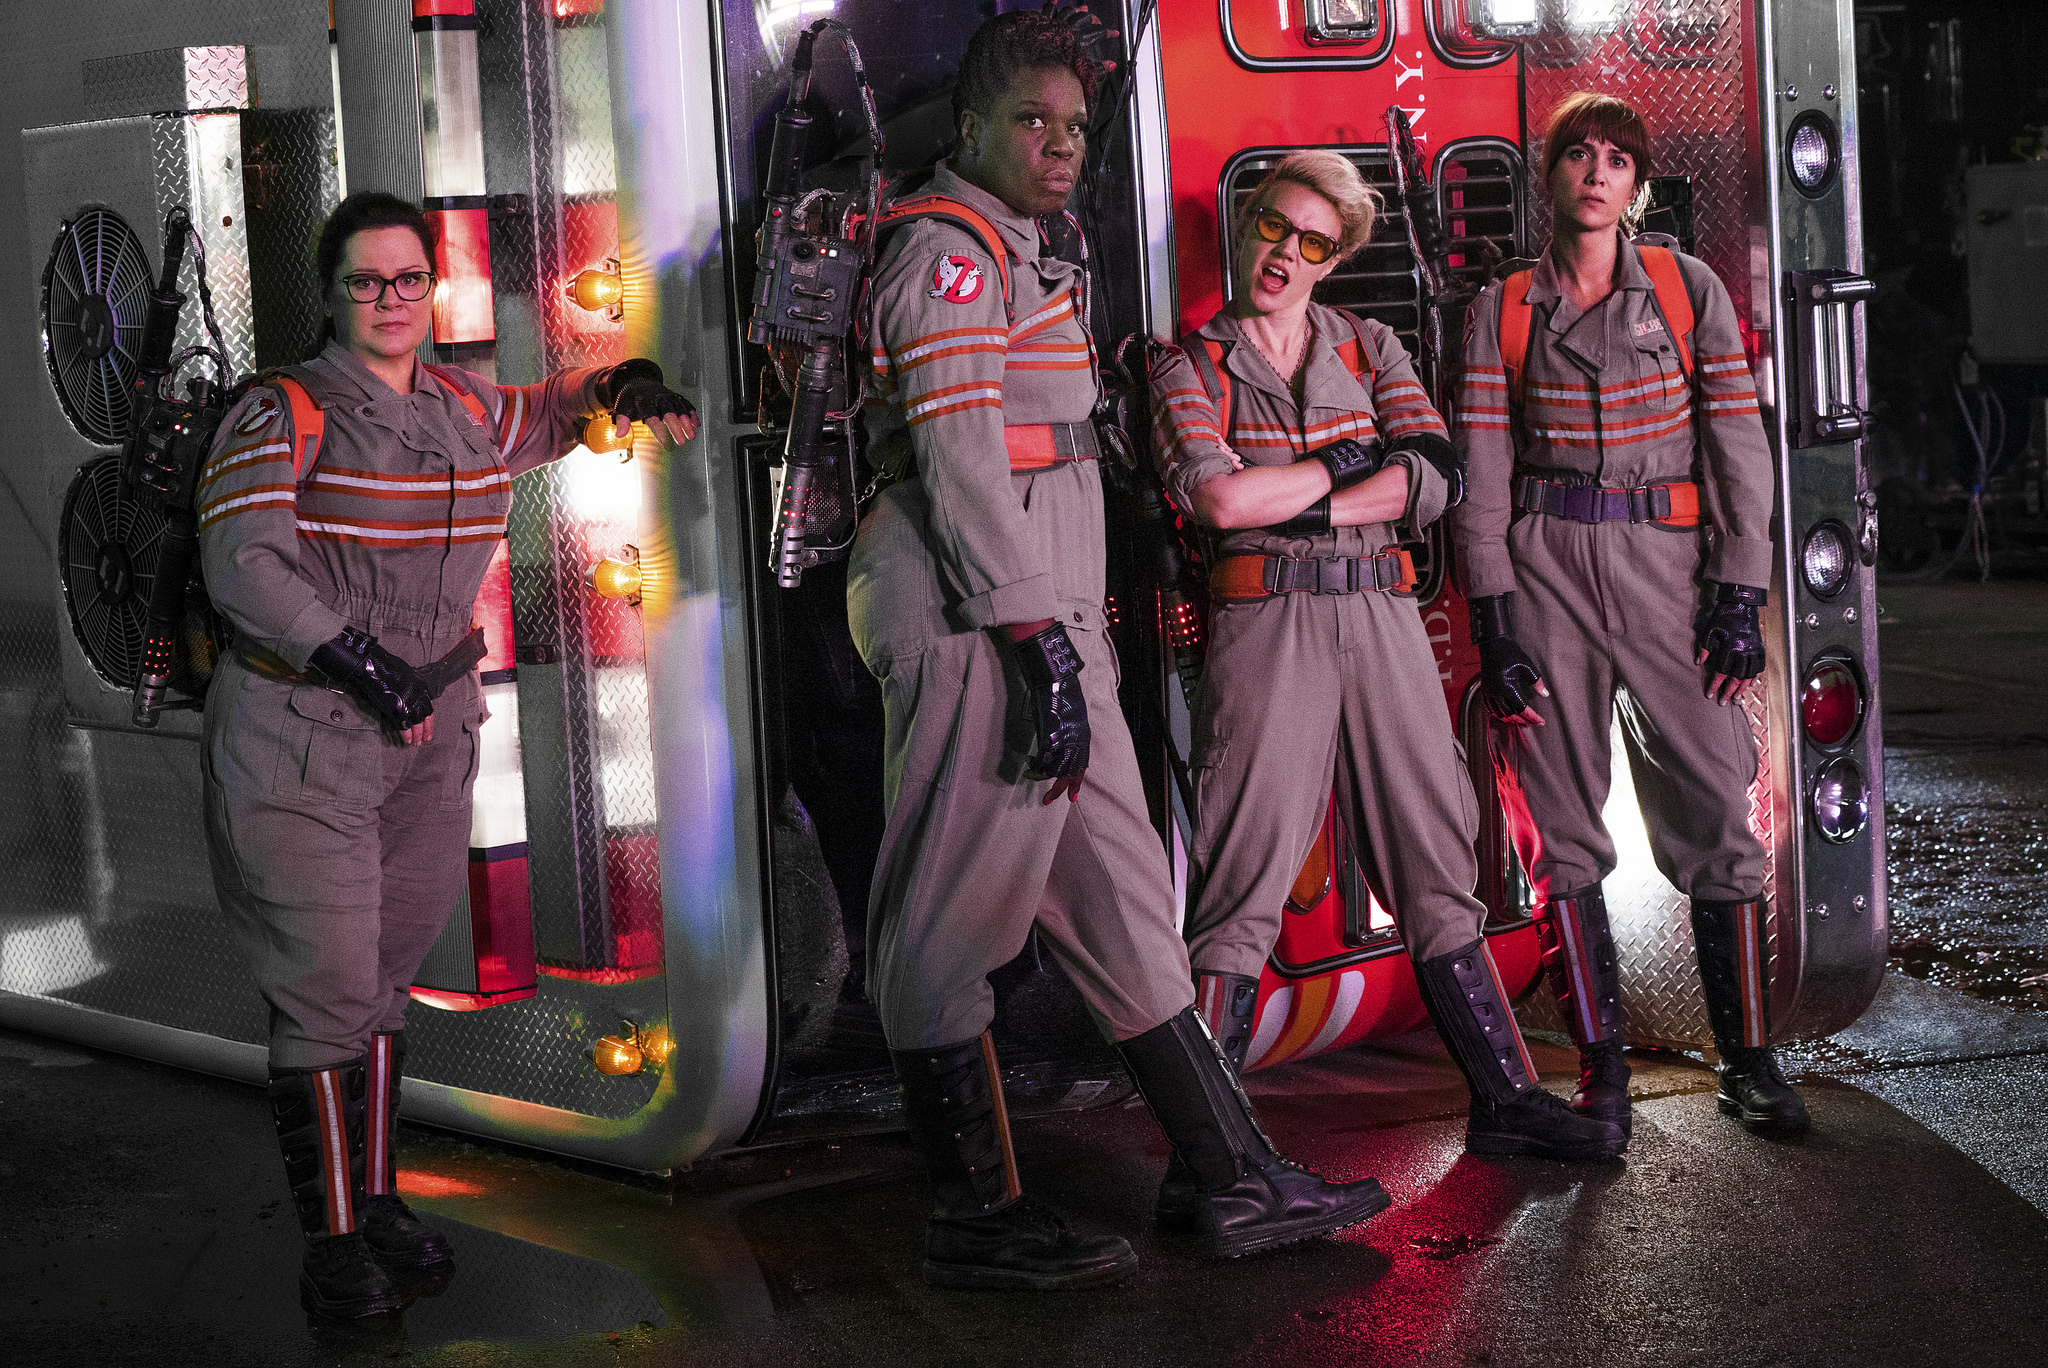 New Pictures from 'Ghostbusters'